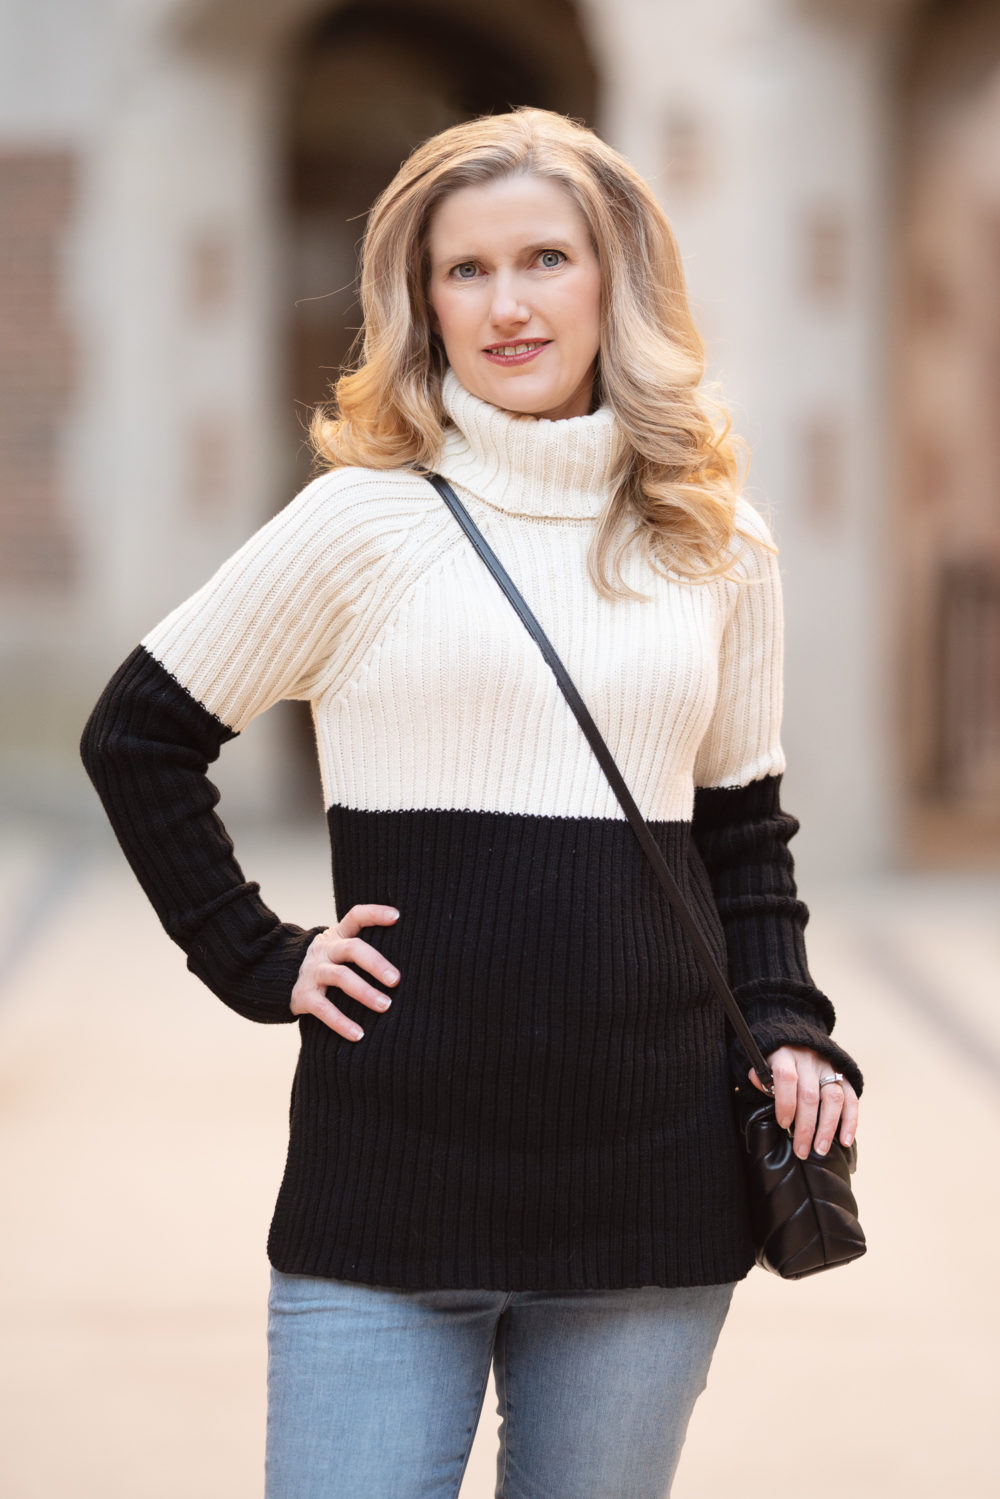 All About Tape-In Hair Extensions | Petite Fashion and Style Blog | Aqua Colorblock Turtleneck Sweater | Stewart Weitzman Highland | Avissa Salon Ann Arbor